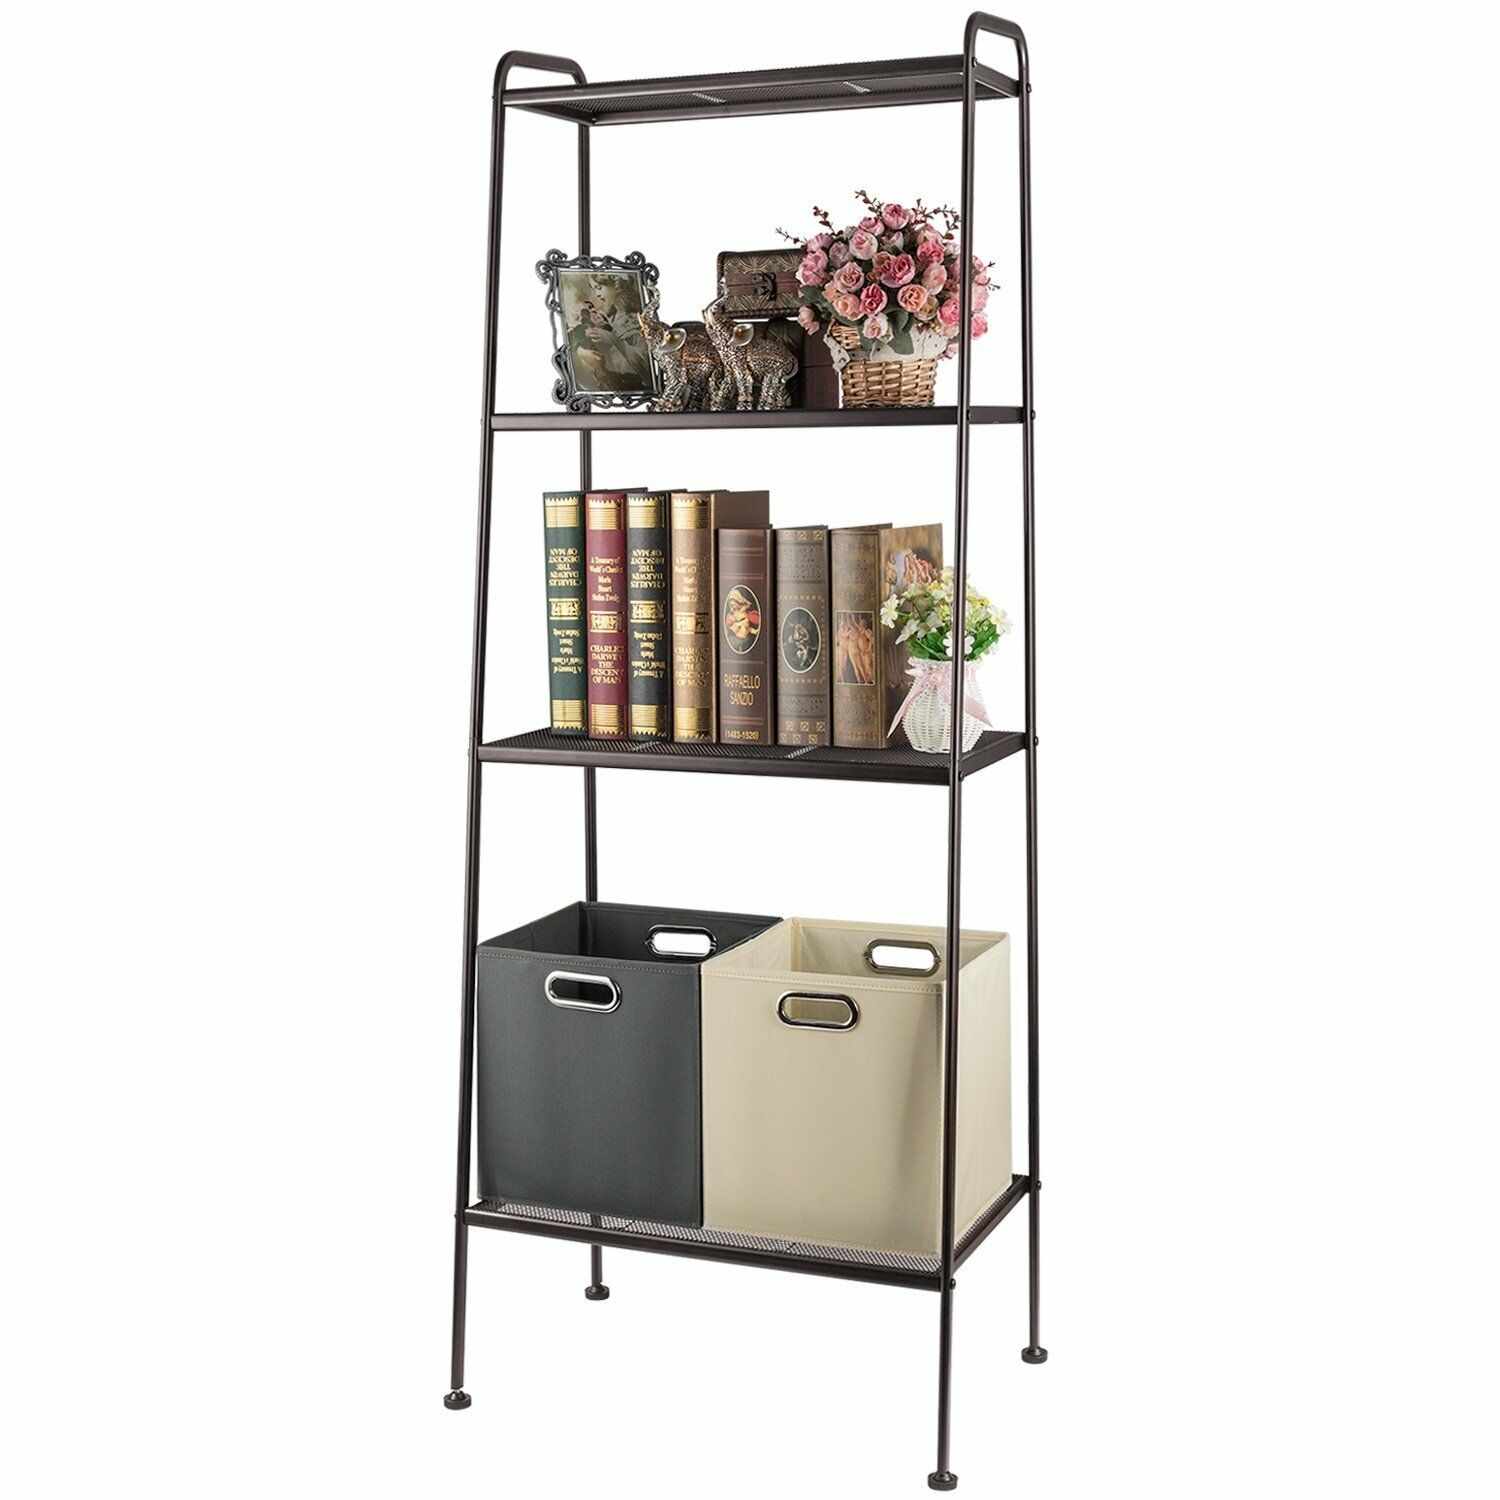 Us 29 99 4 Tier Durable Bookcase Bookshelf Leaning Wall Shelf Shelving Ladder Storage Only Ship To Us In Storage Holders Racks From Home Garden